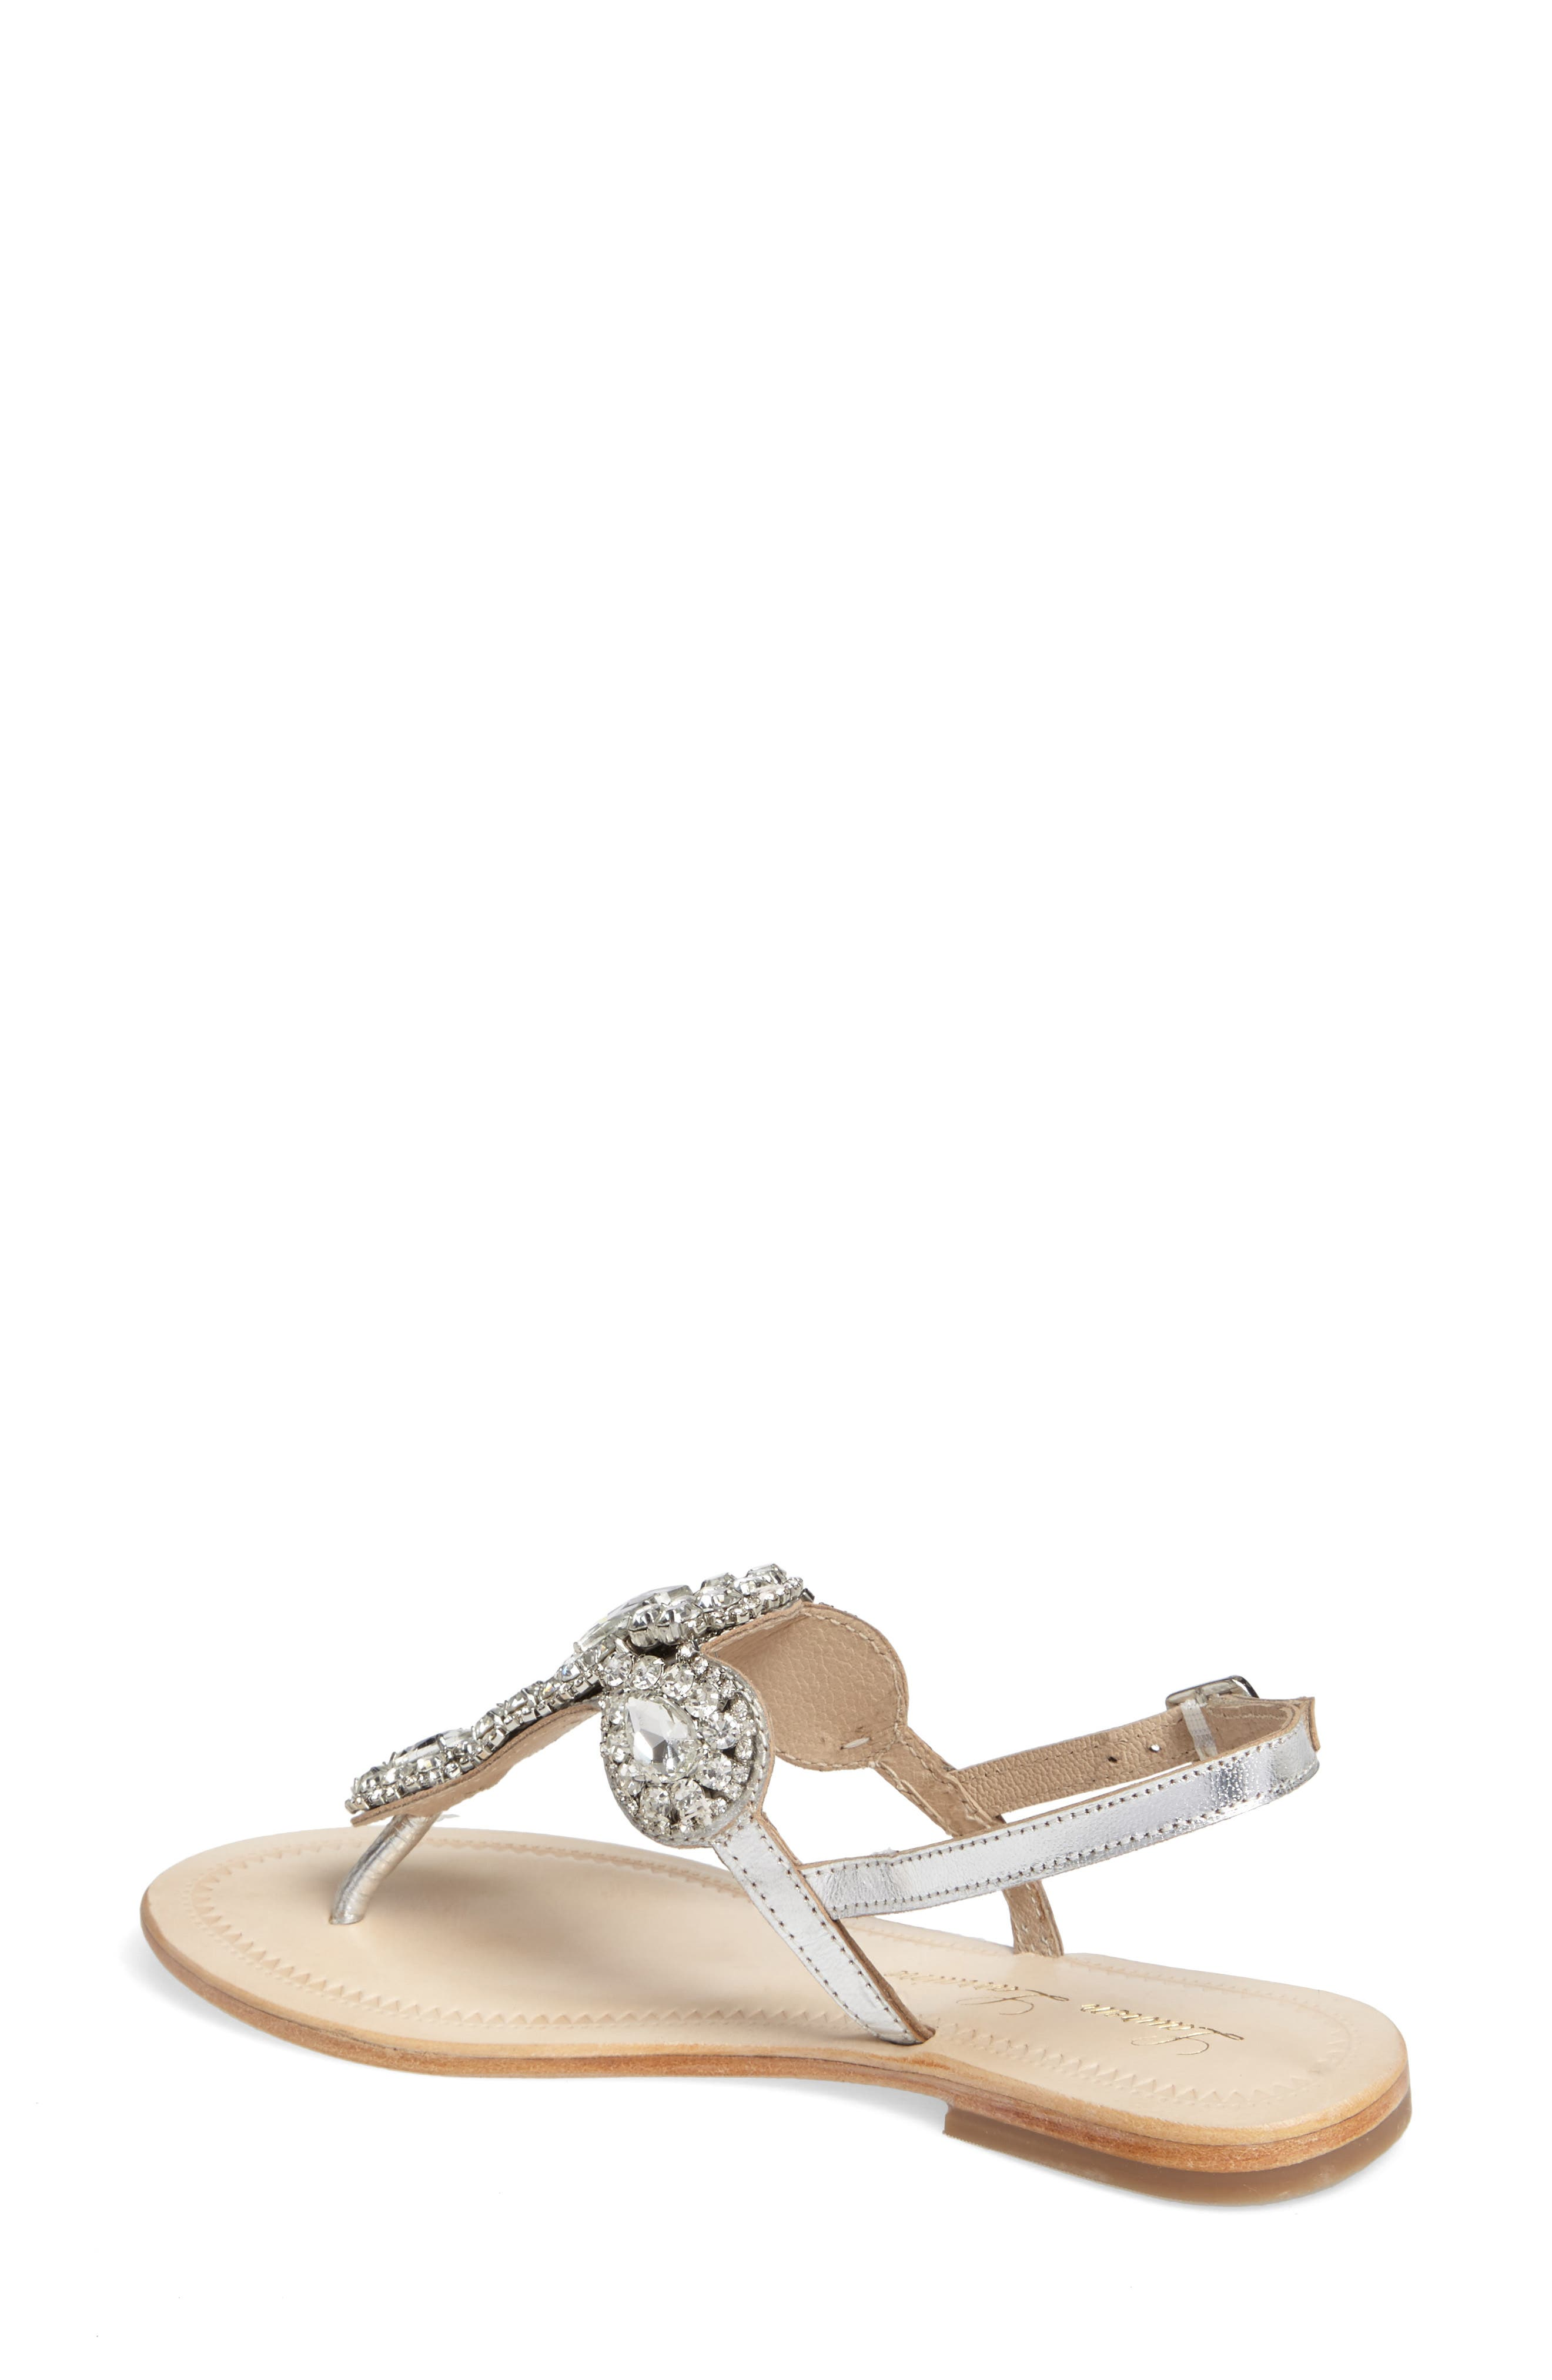 Bahama Crystal Embellished Sandal,                             Alternate thumbnail 2, color,                             045